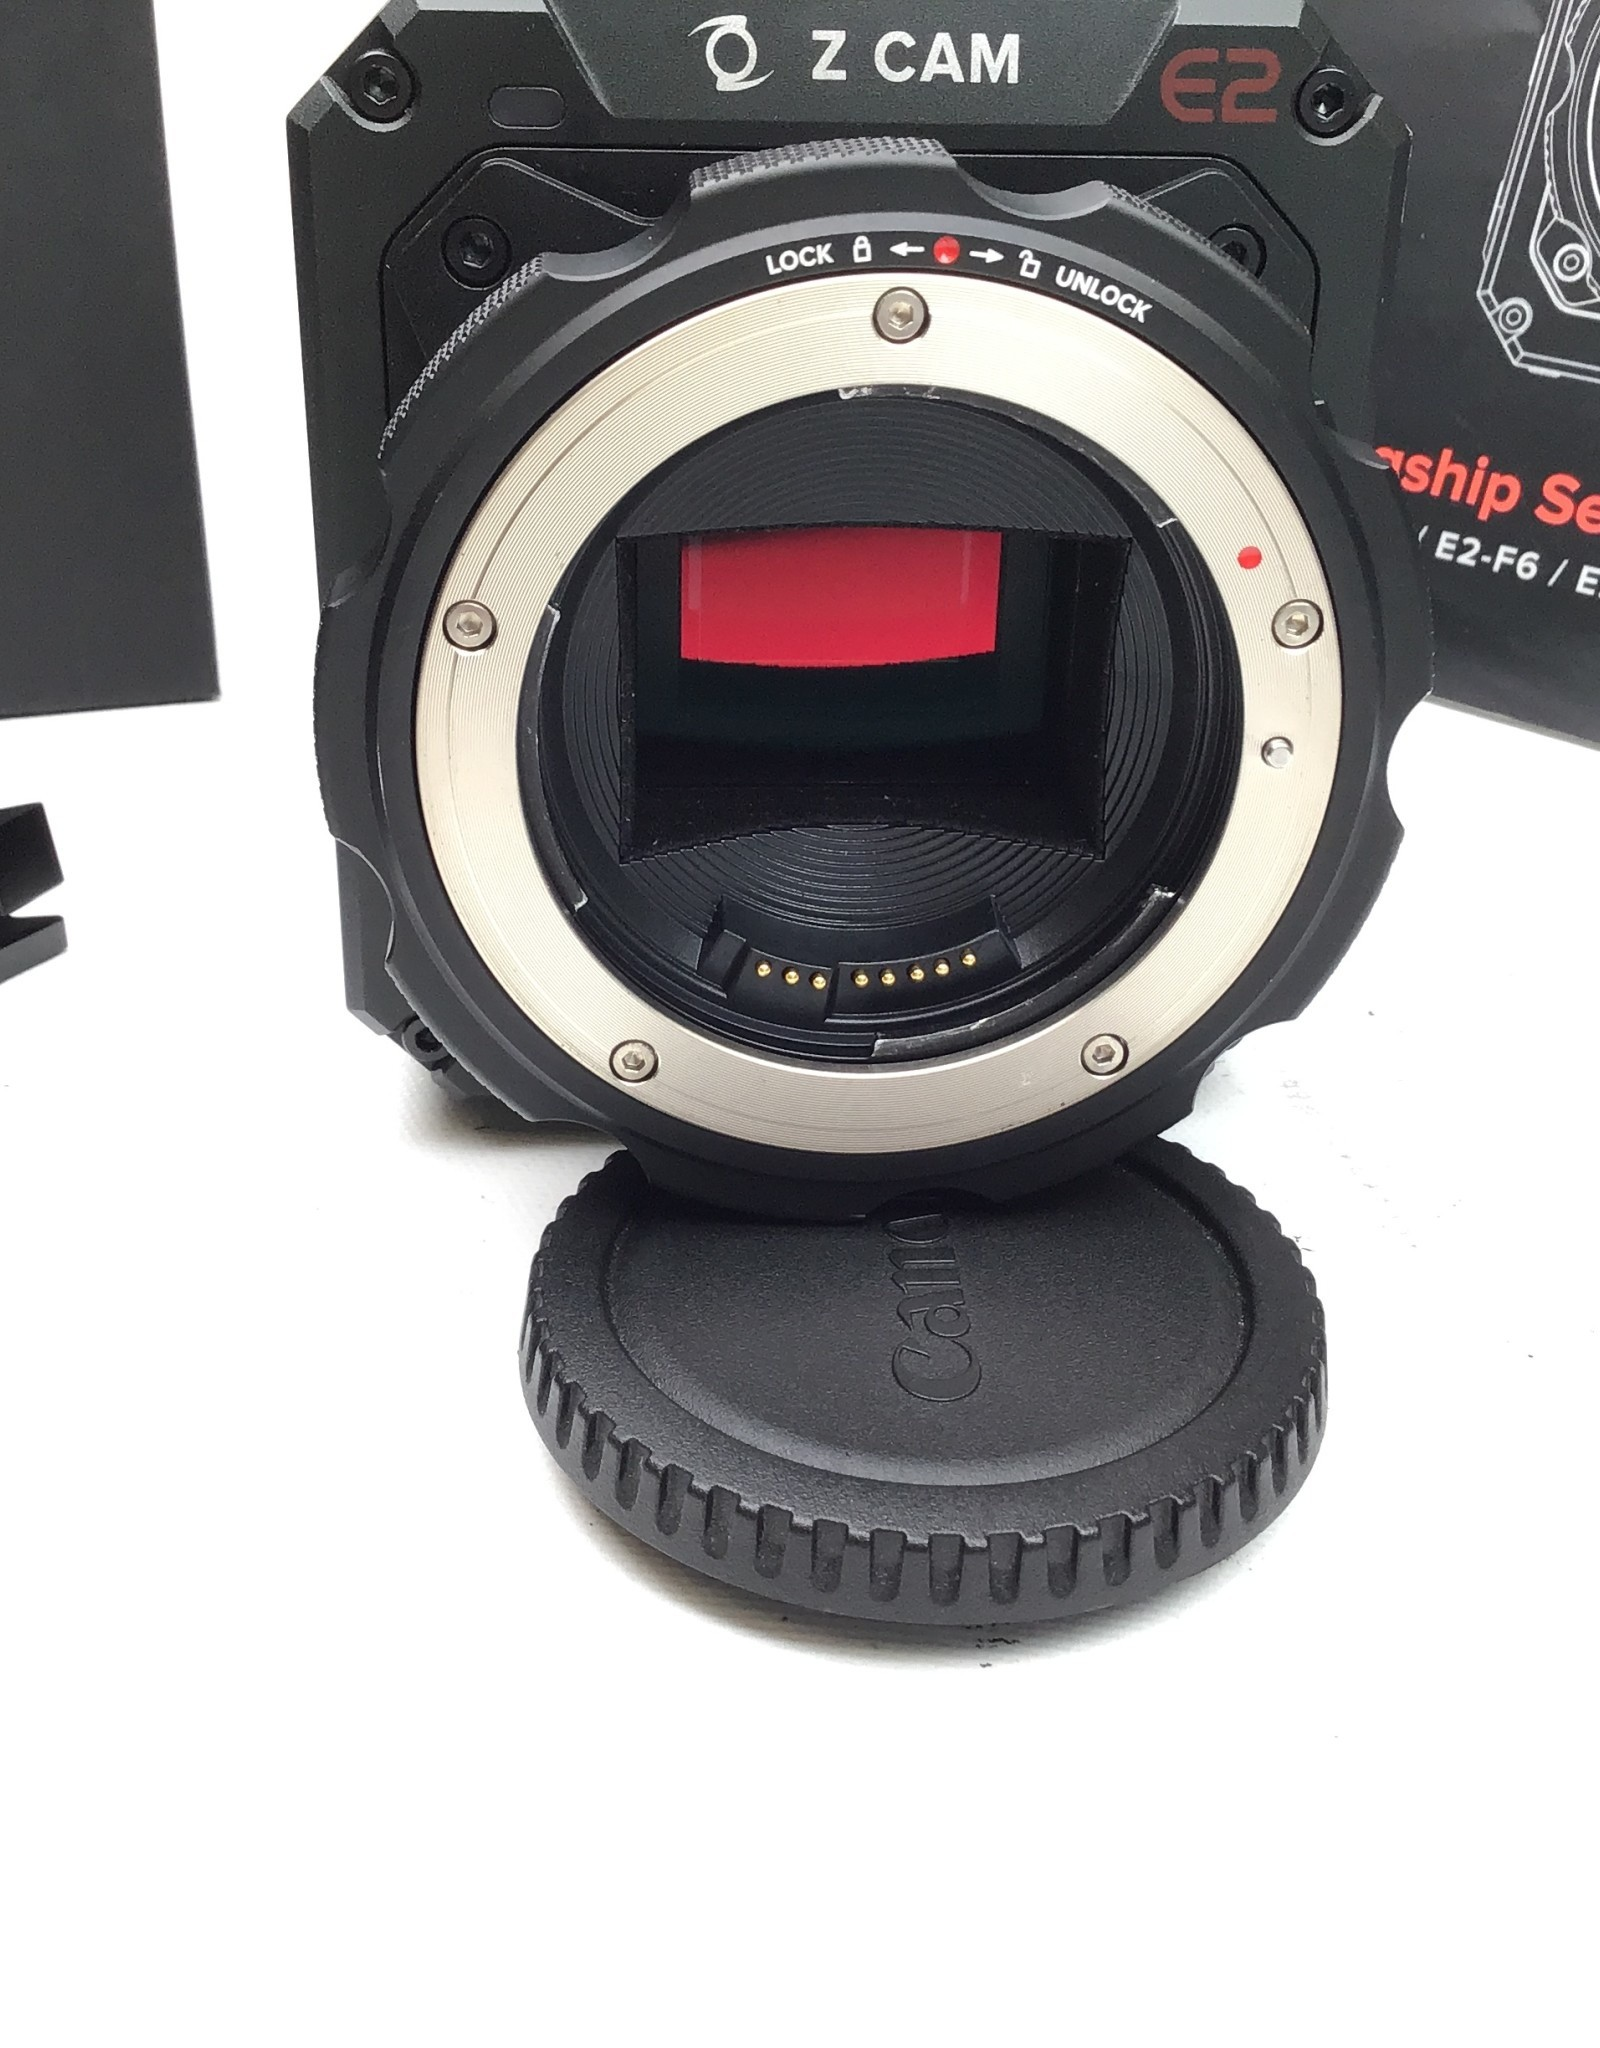 Z Cam Z Cam E2-S6 Camera with Canon EF Mount in Box Used EX